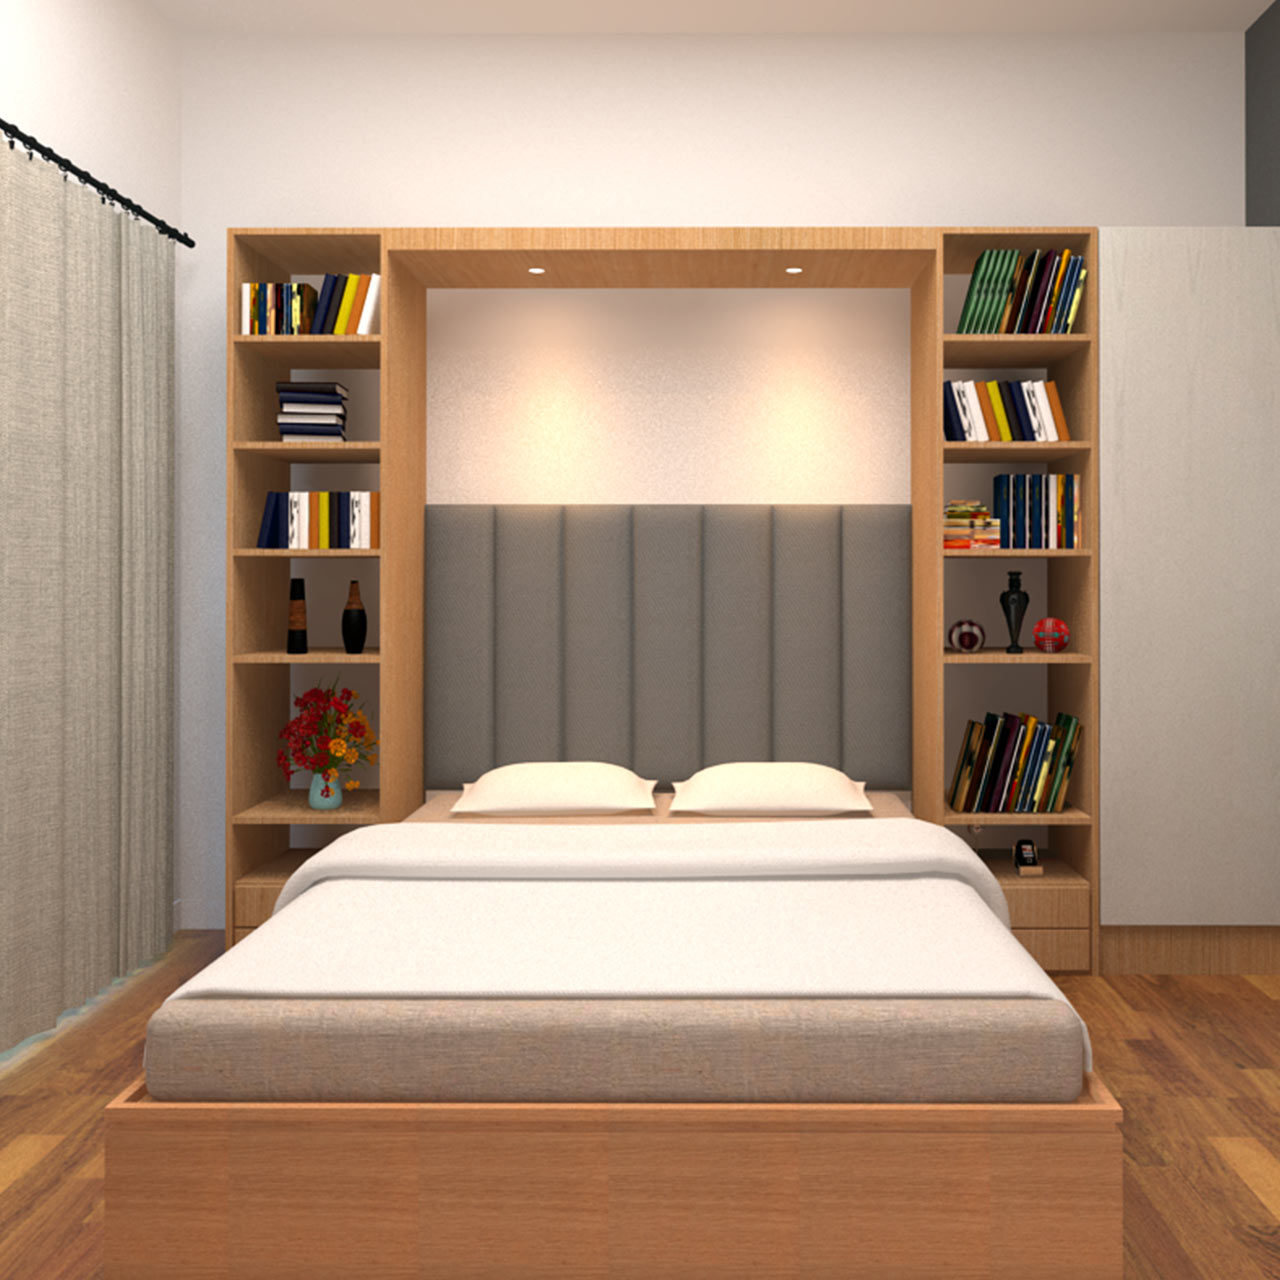 Things to consider before interior designing your bedroom accessories, checklist of bedroom design